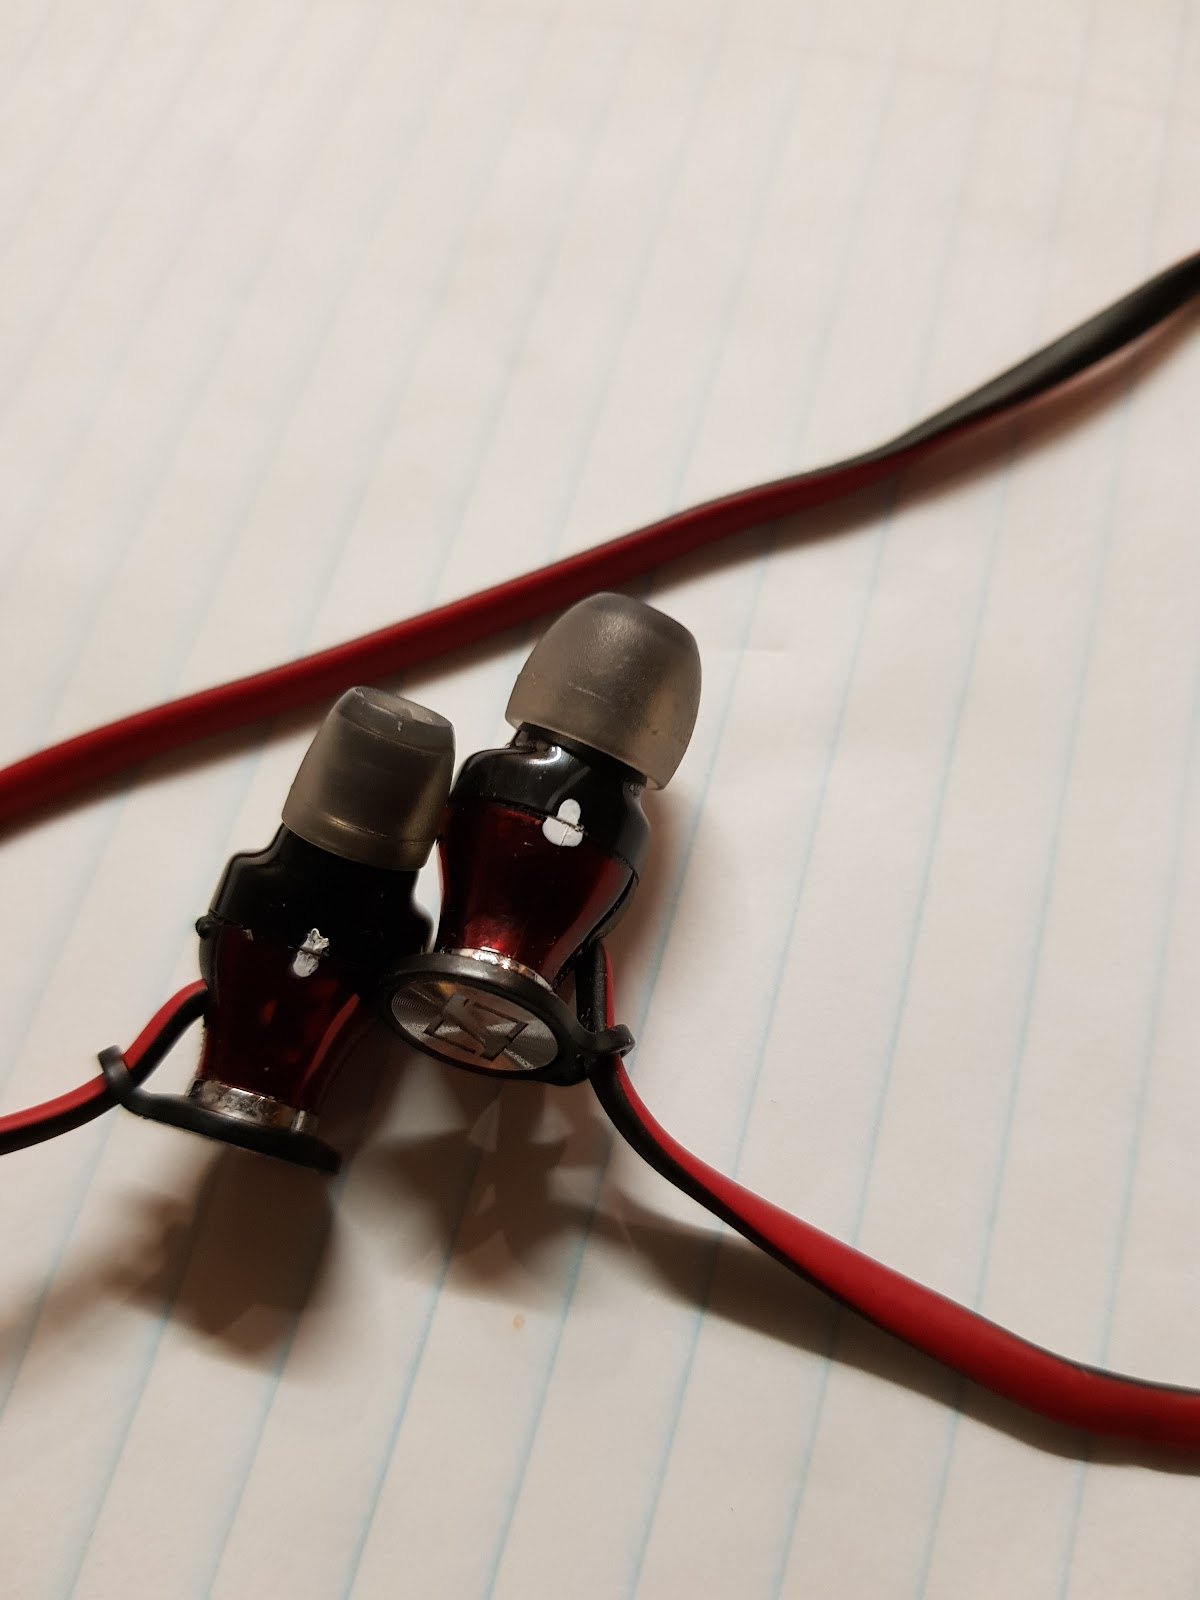 Sennheiser momentum in ear repair headphone reviews and once i got them apart i began cutting out the wire since it was useless in its current state the previous owner had wrapped some leather around the plug asfbconference2016 Images